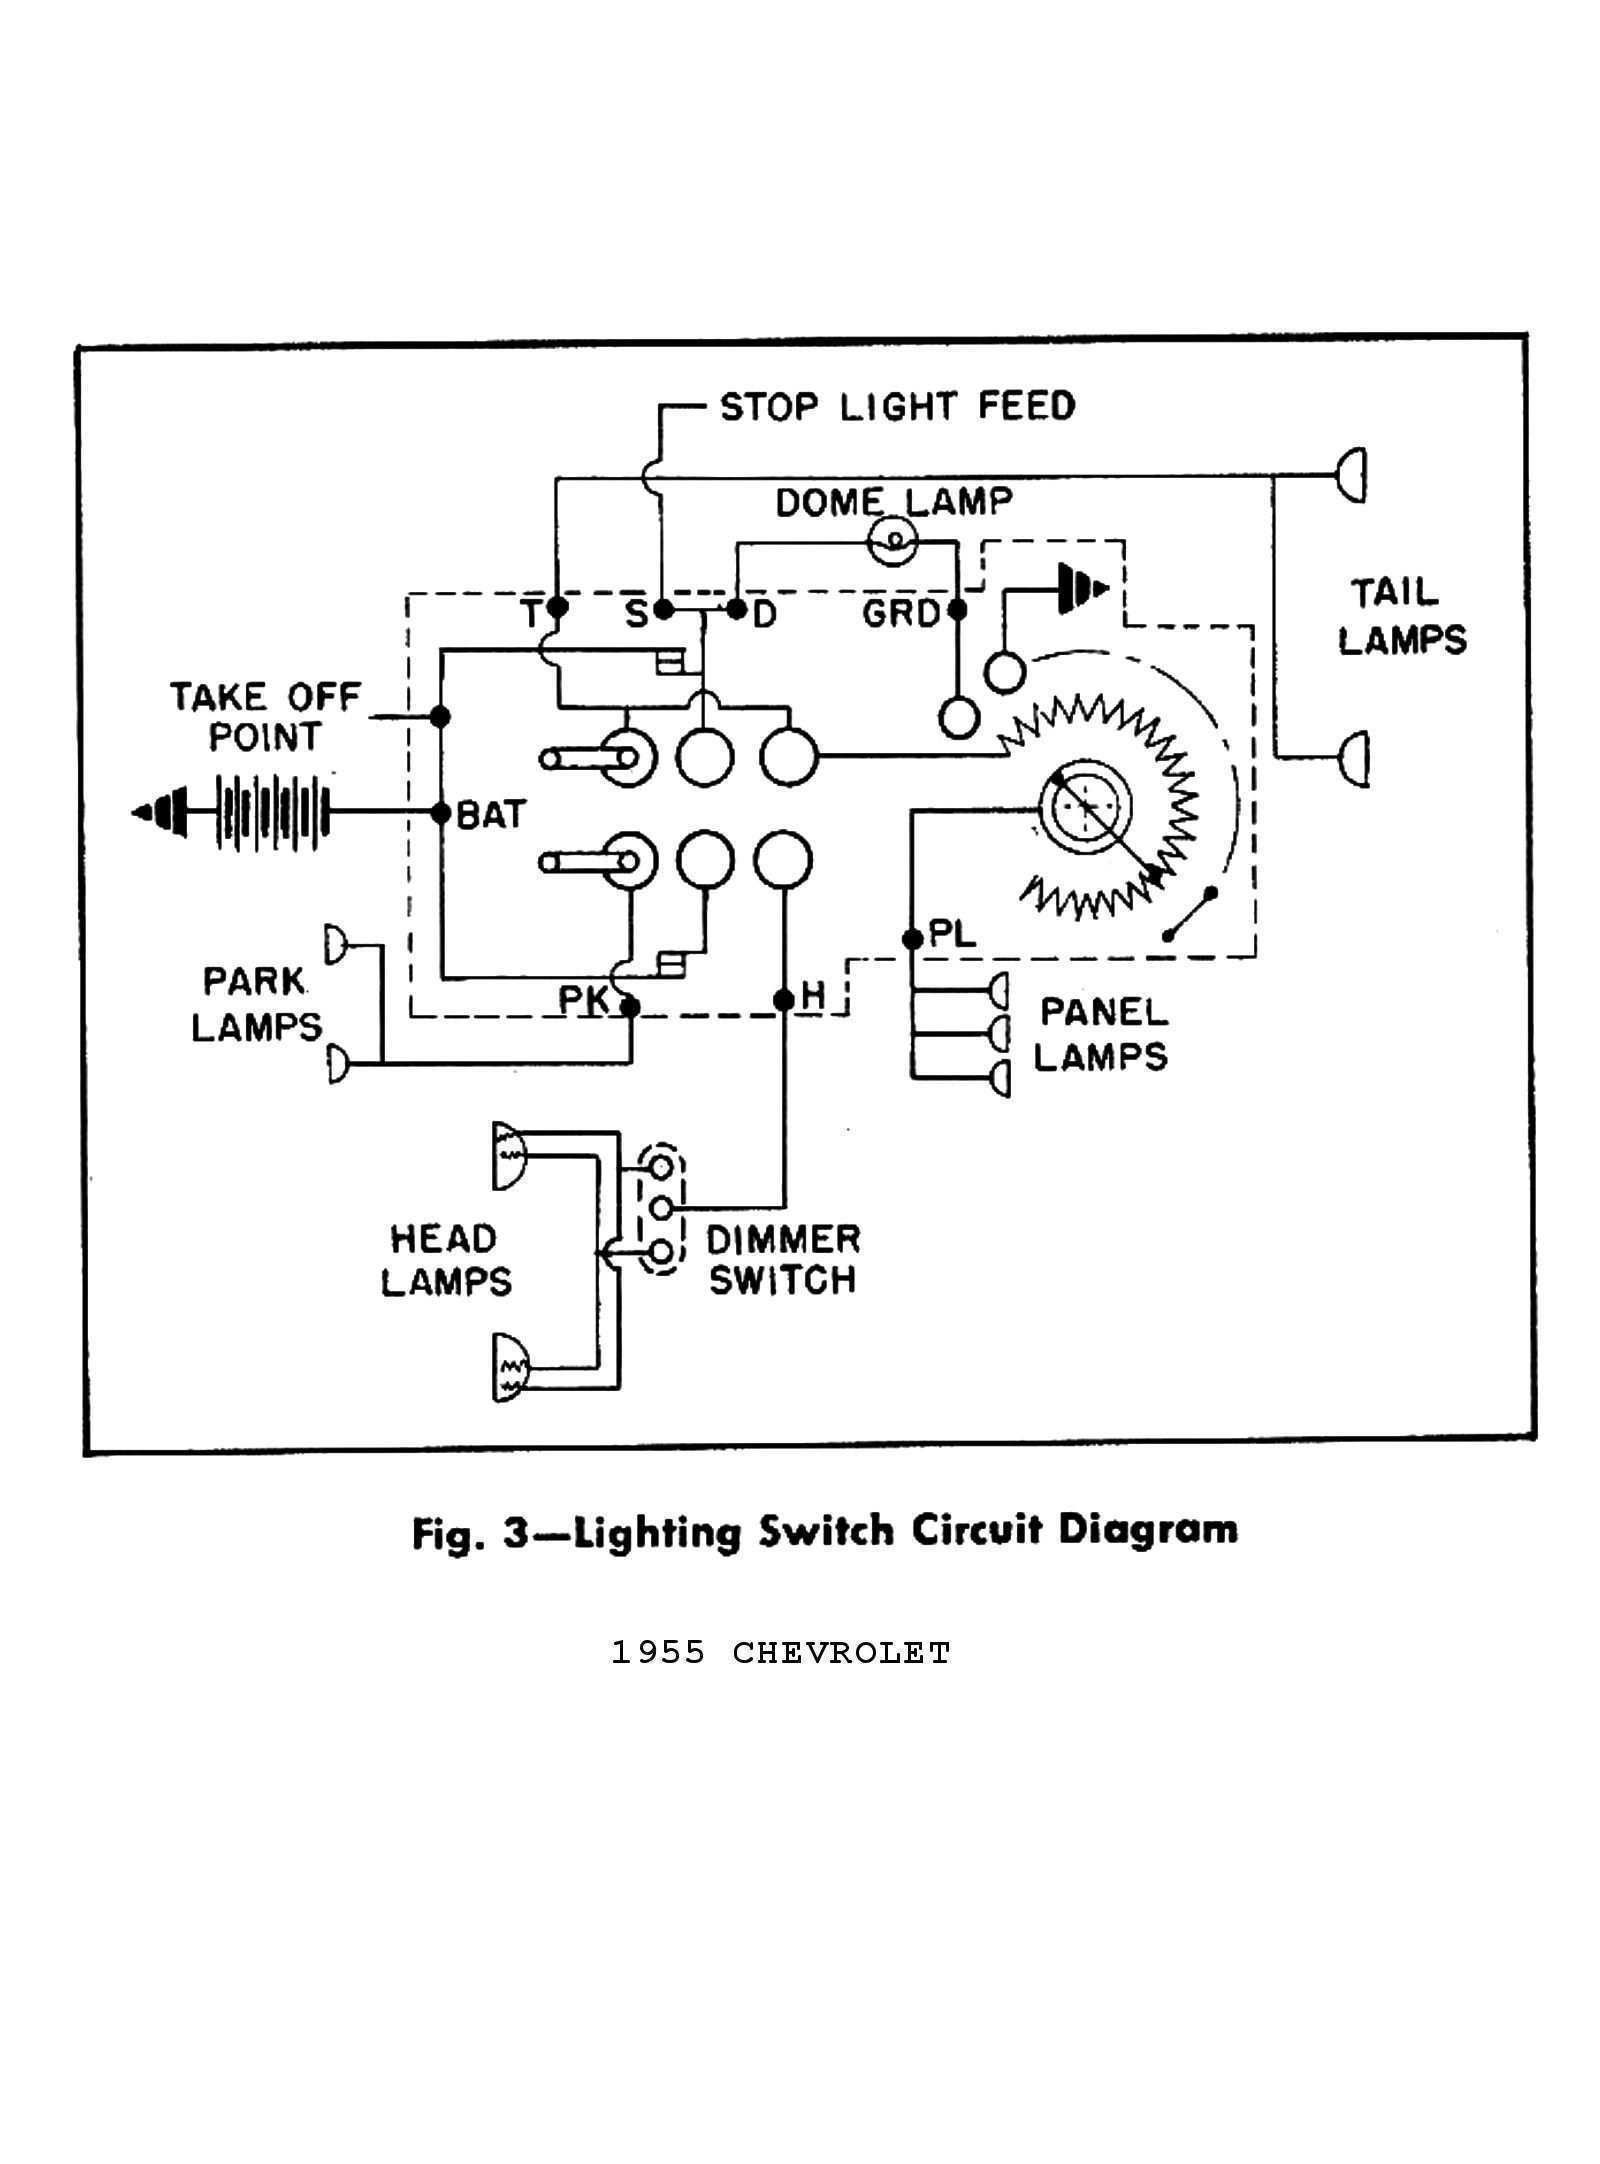 35 Ford Head Light Switch Wiring Diagram Bookingritzcarlton Info Light Switch Wiring Diagram Electrical Switch Wiring